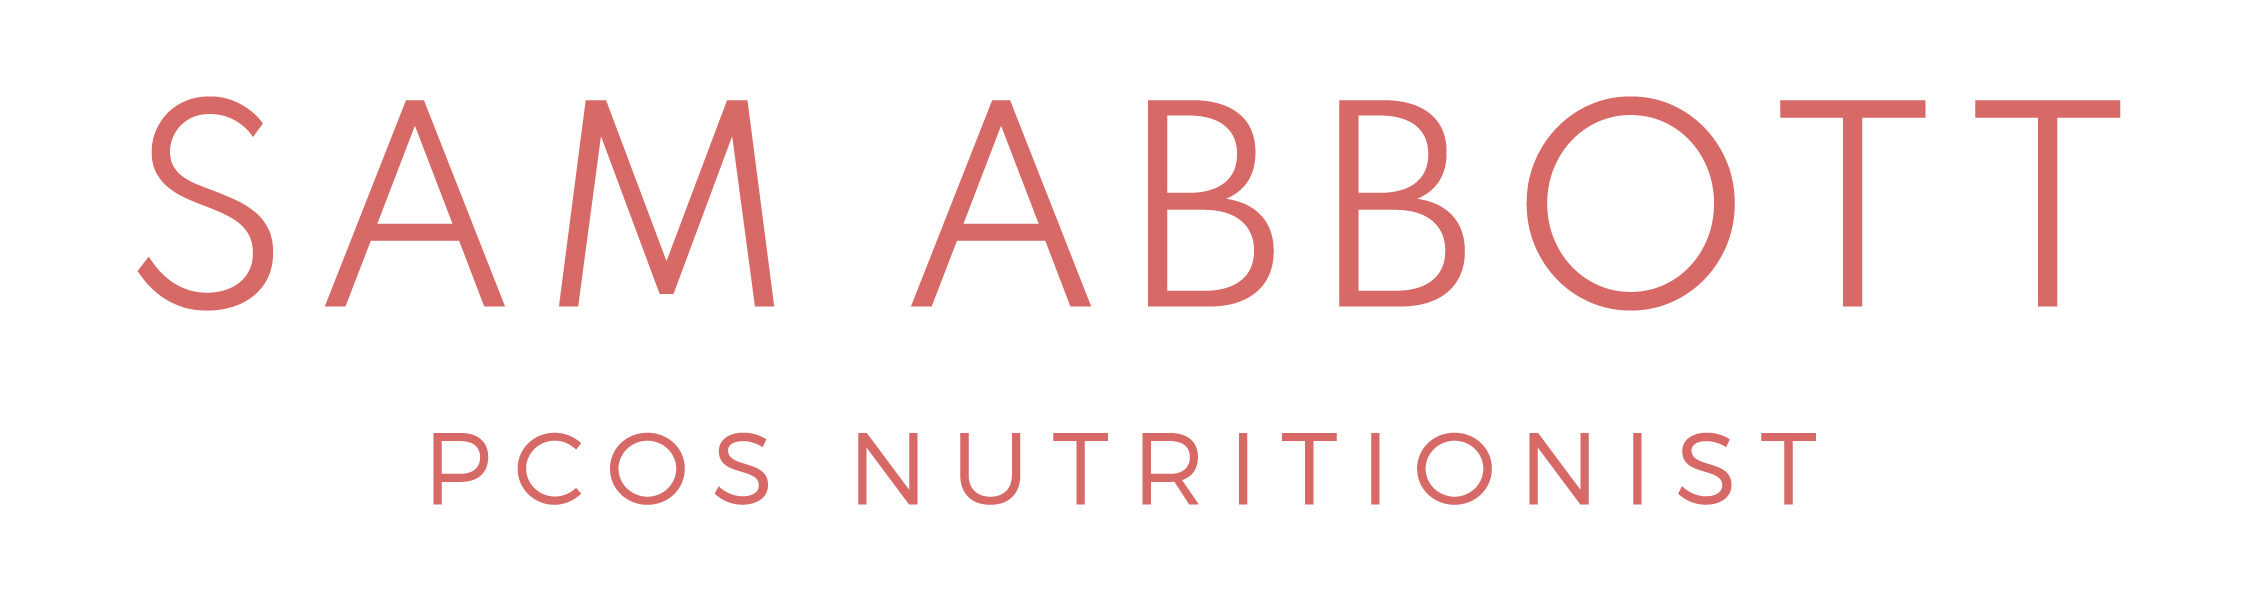 PCOS Nutritionist | G & G Nutrition Co.